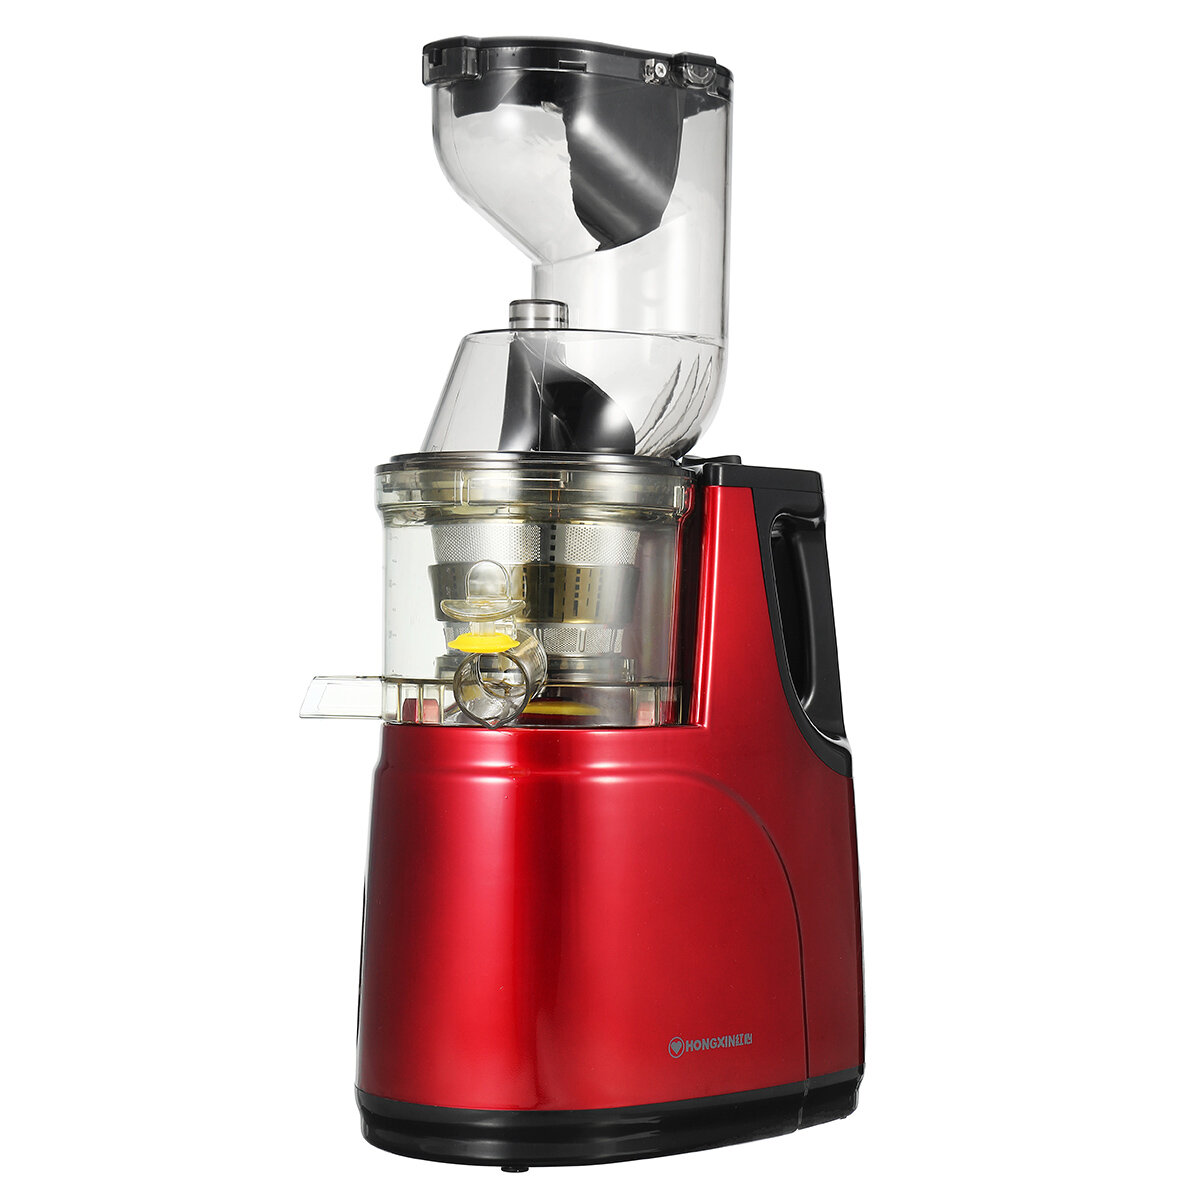 HONGXIN 150W Electric Juicer Cold Press Slow Whole Fruit Vegetables Mixer Machine Tool